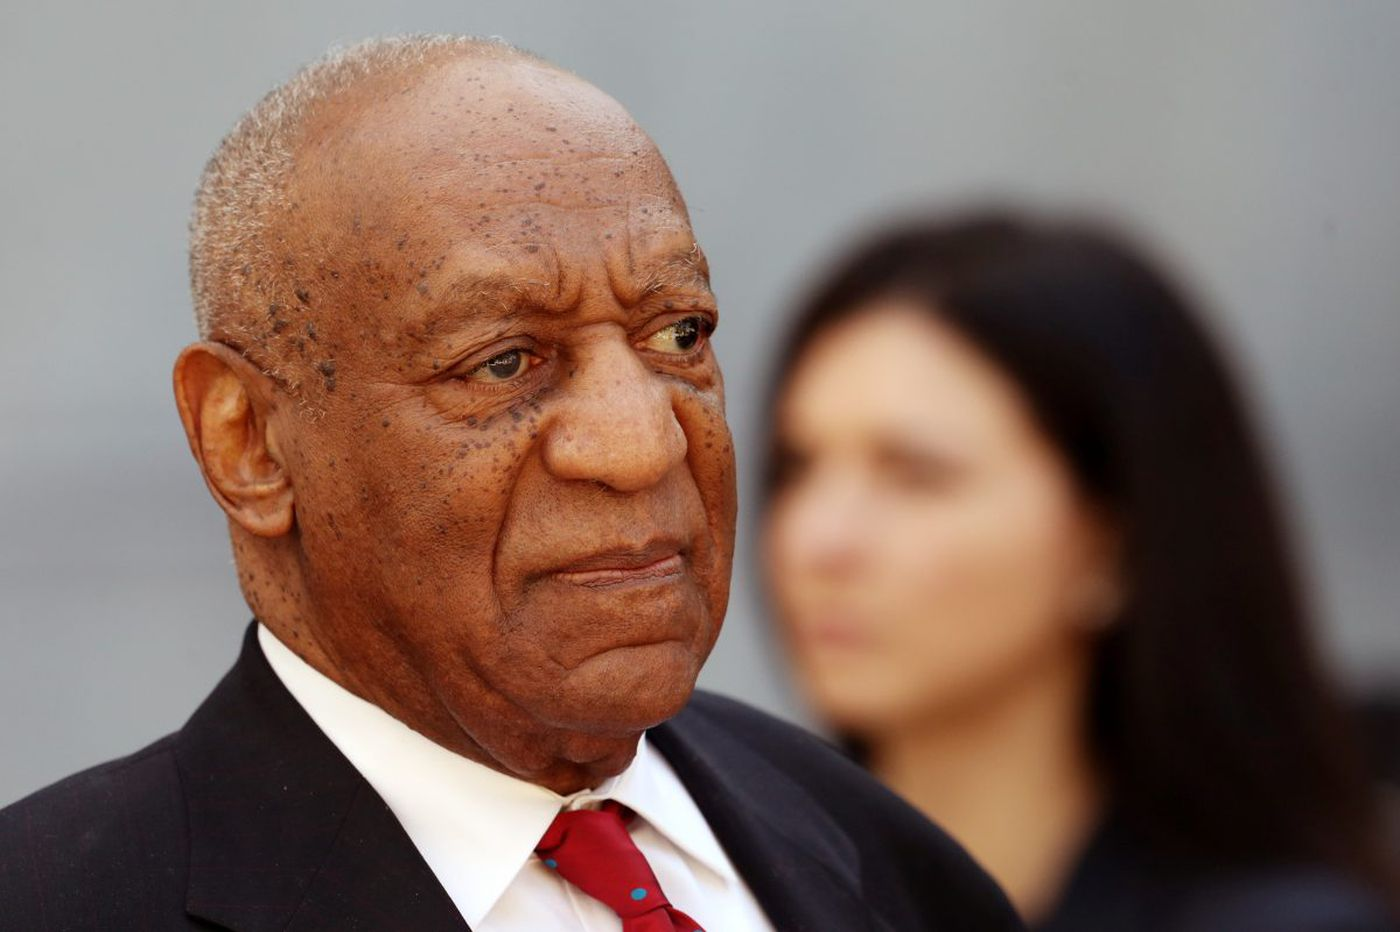 Kennedy Center rescinds Honors, Twain awards given to Bill Cosby